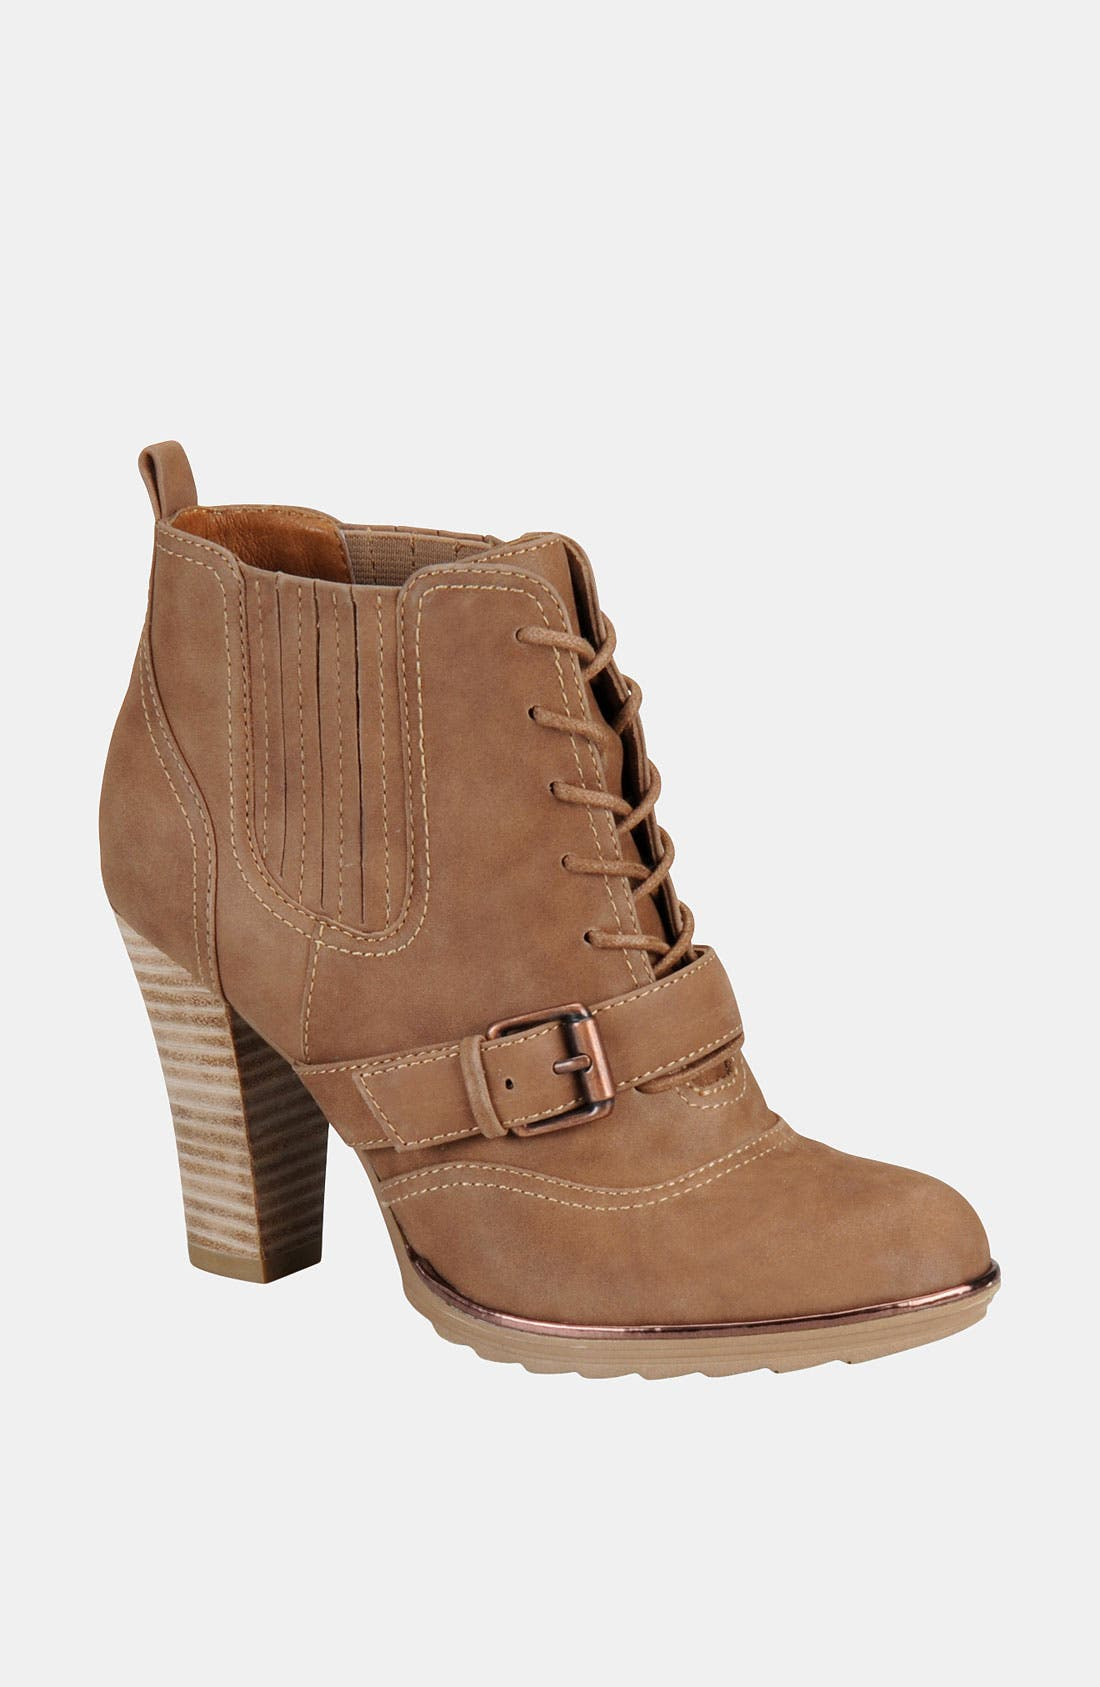 Alternate Image 1 Selected - Söfft 'Windsor' Military Bootie